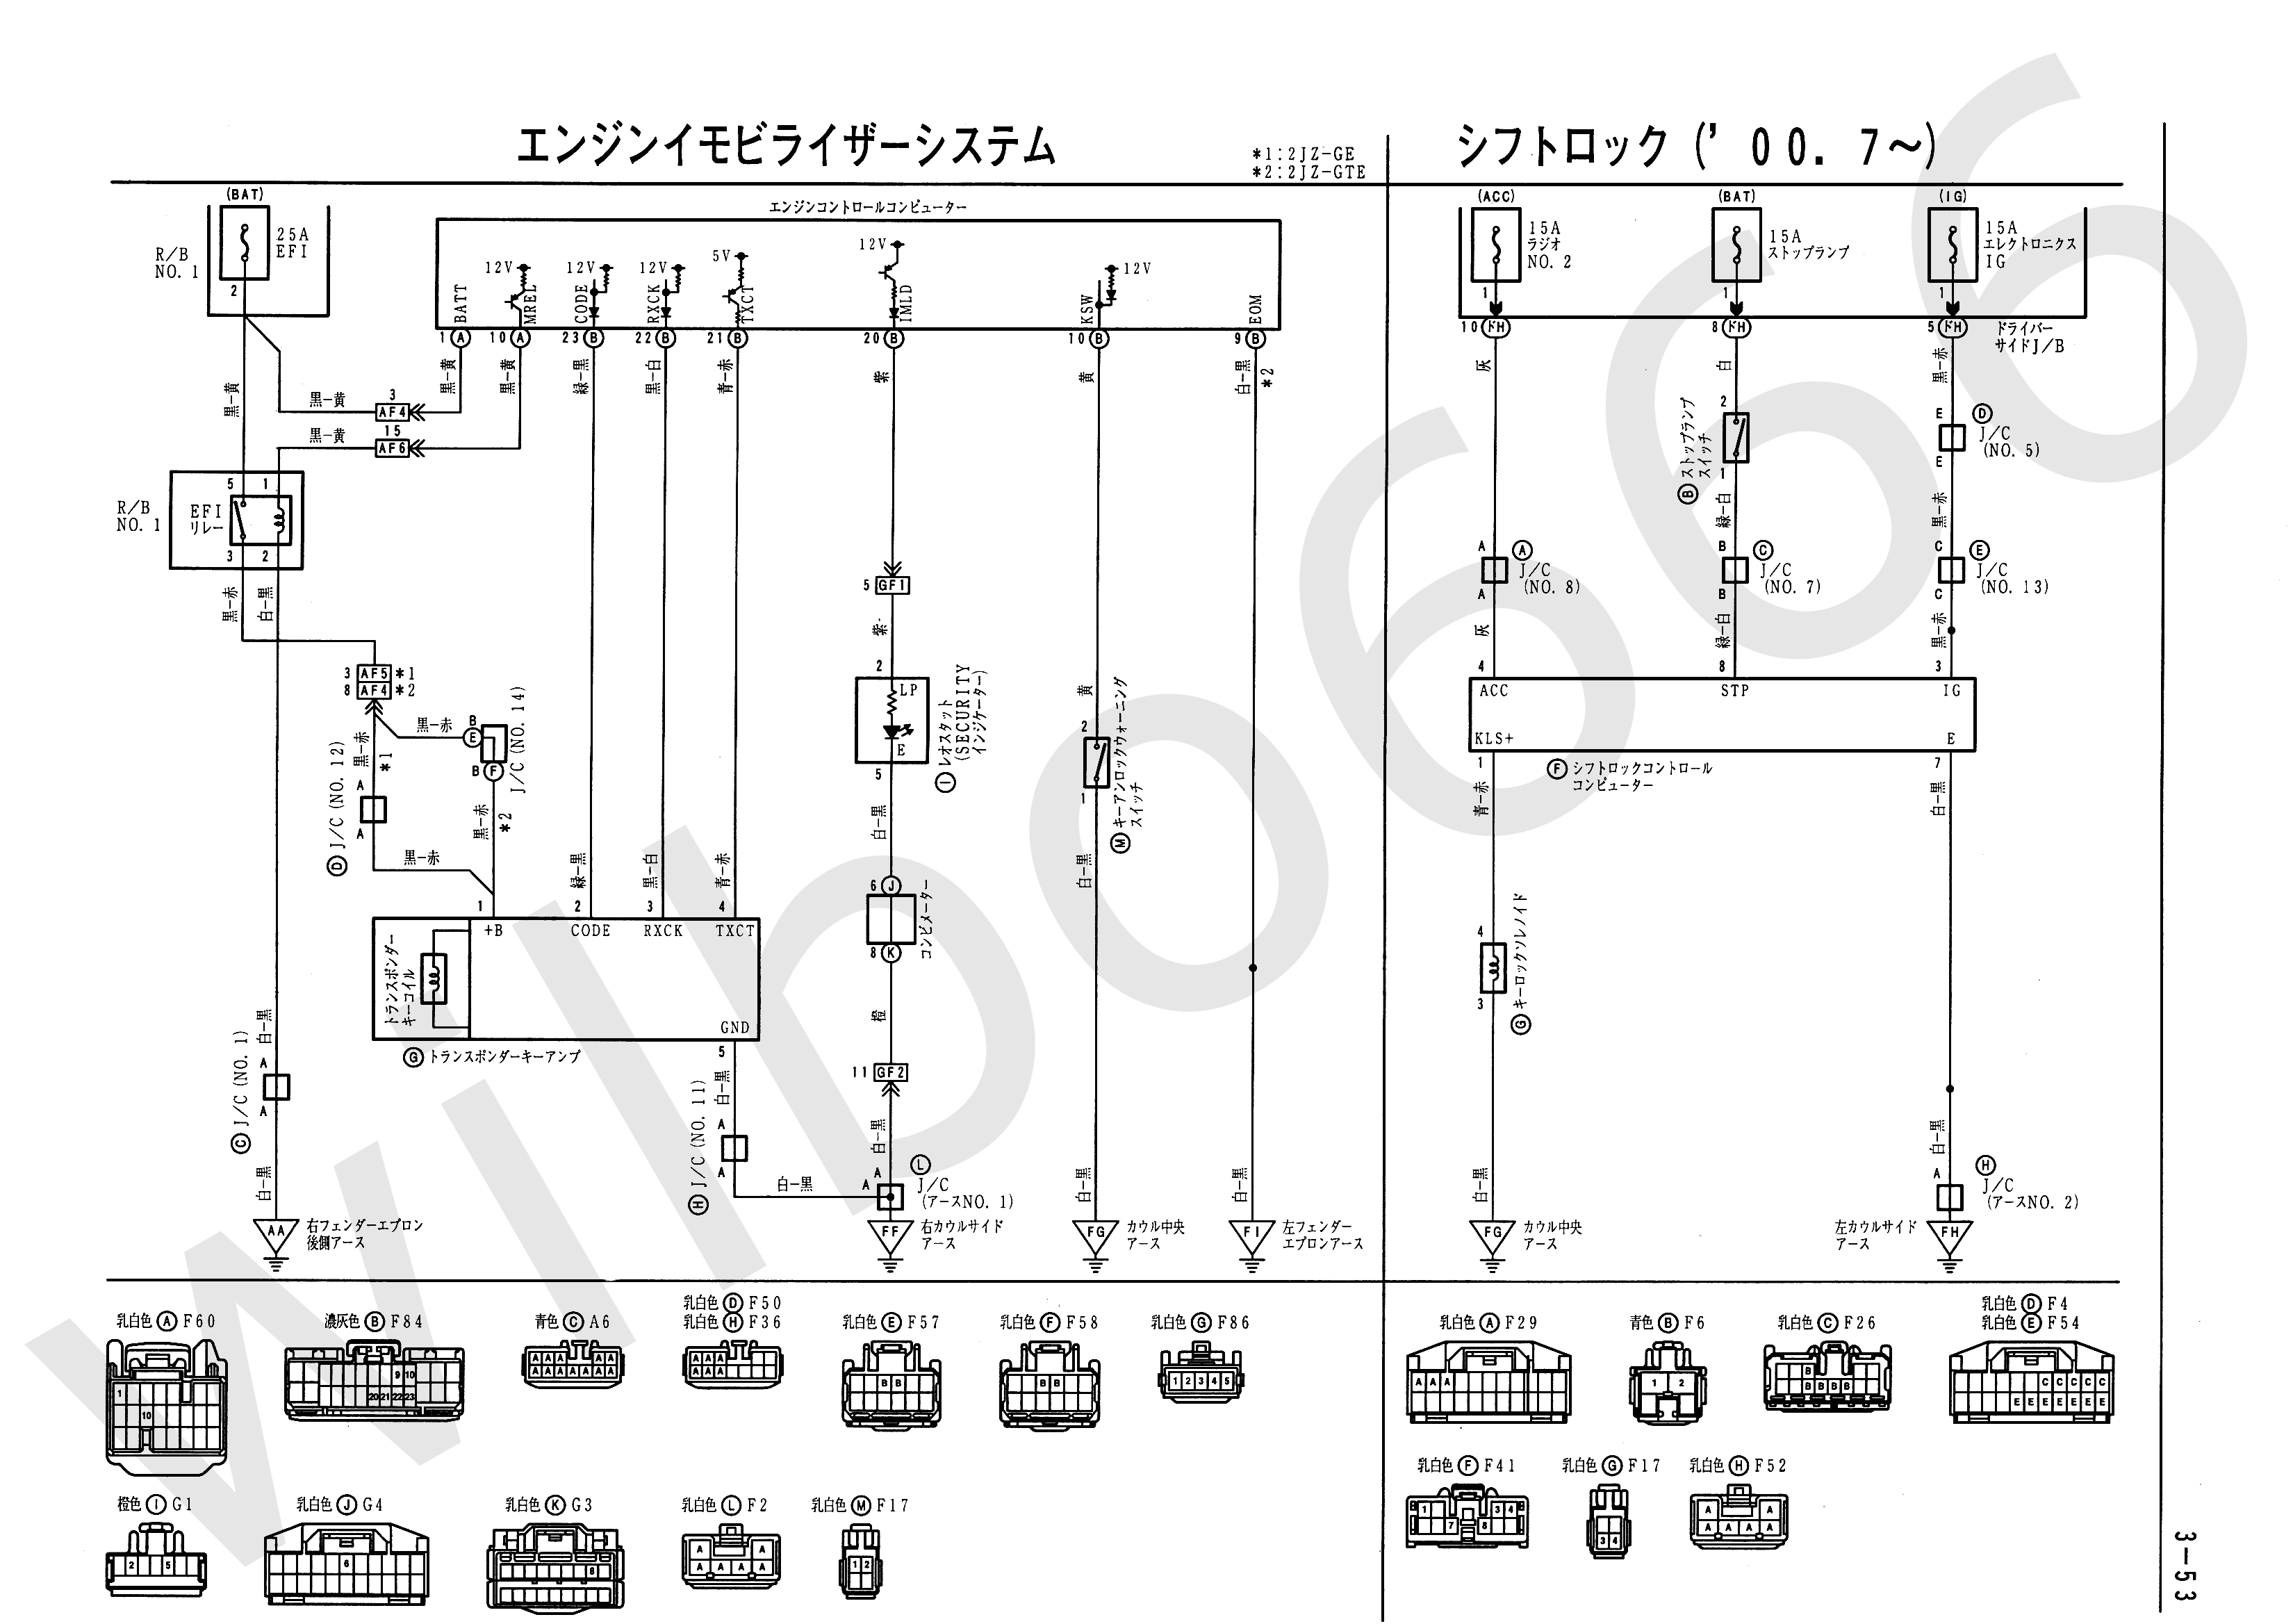 JZS161 Electrical Wiring Diagram 6748505 3 53 apexi vafc wiring diagram 2000 accord oil pressure wire diagram protectofier wiring diagram at readyjetset.co